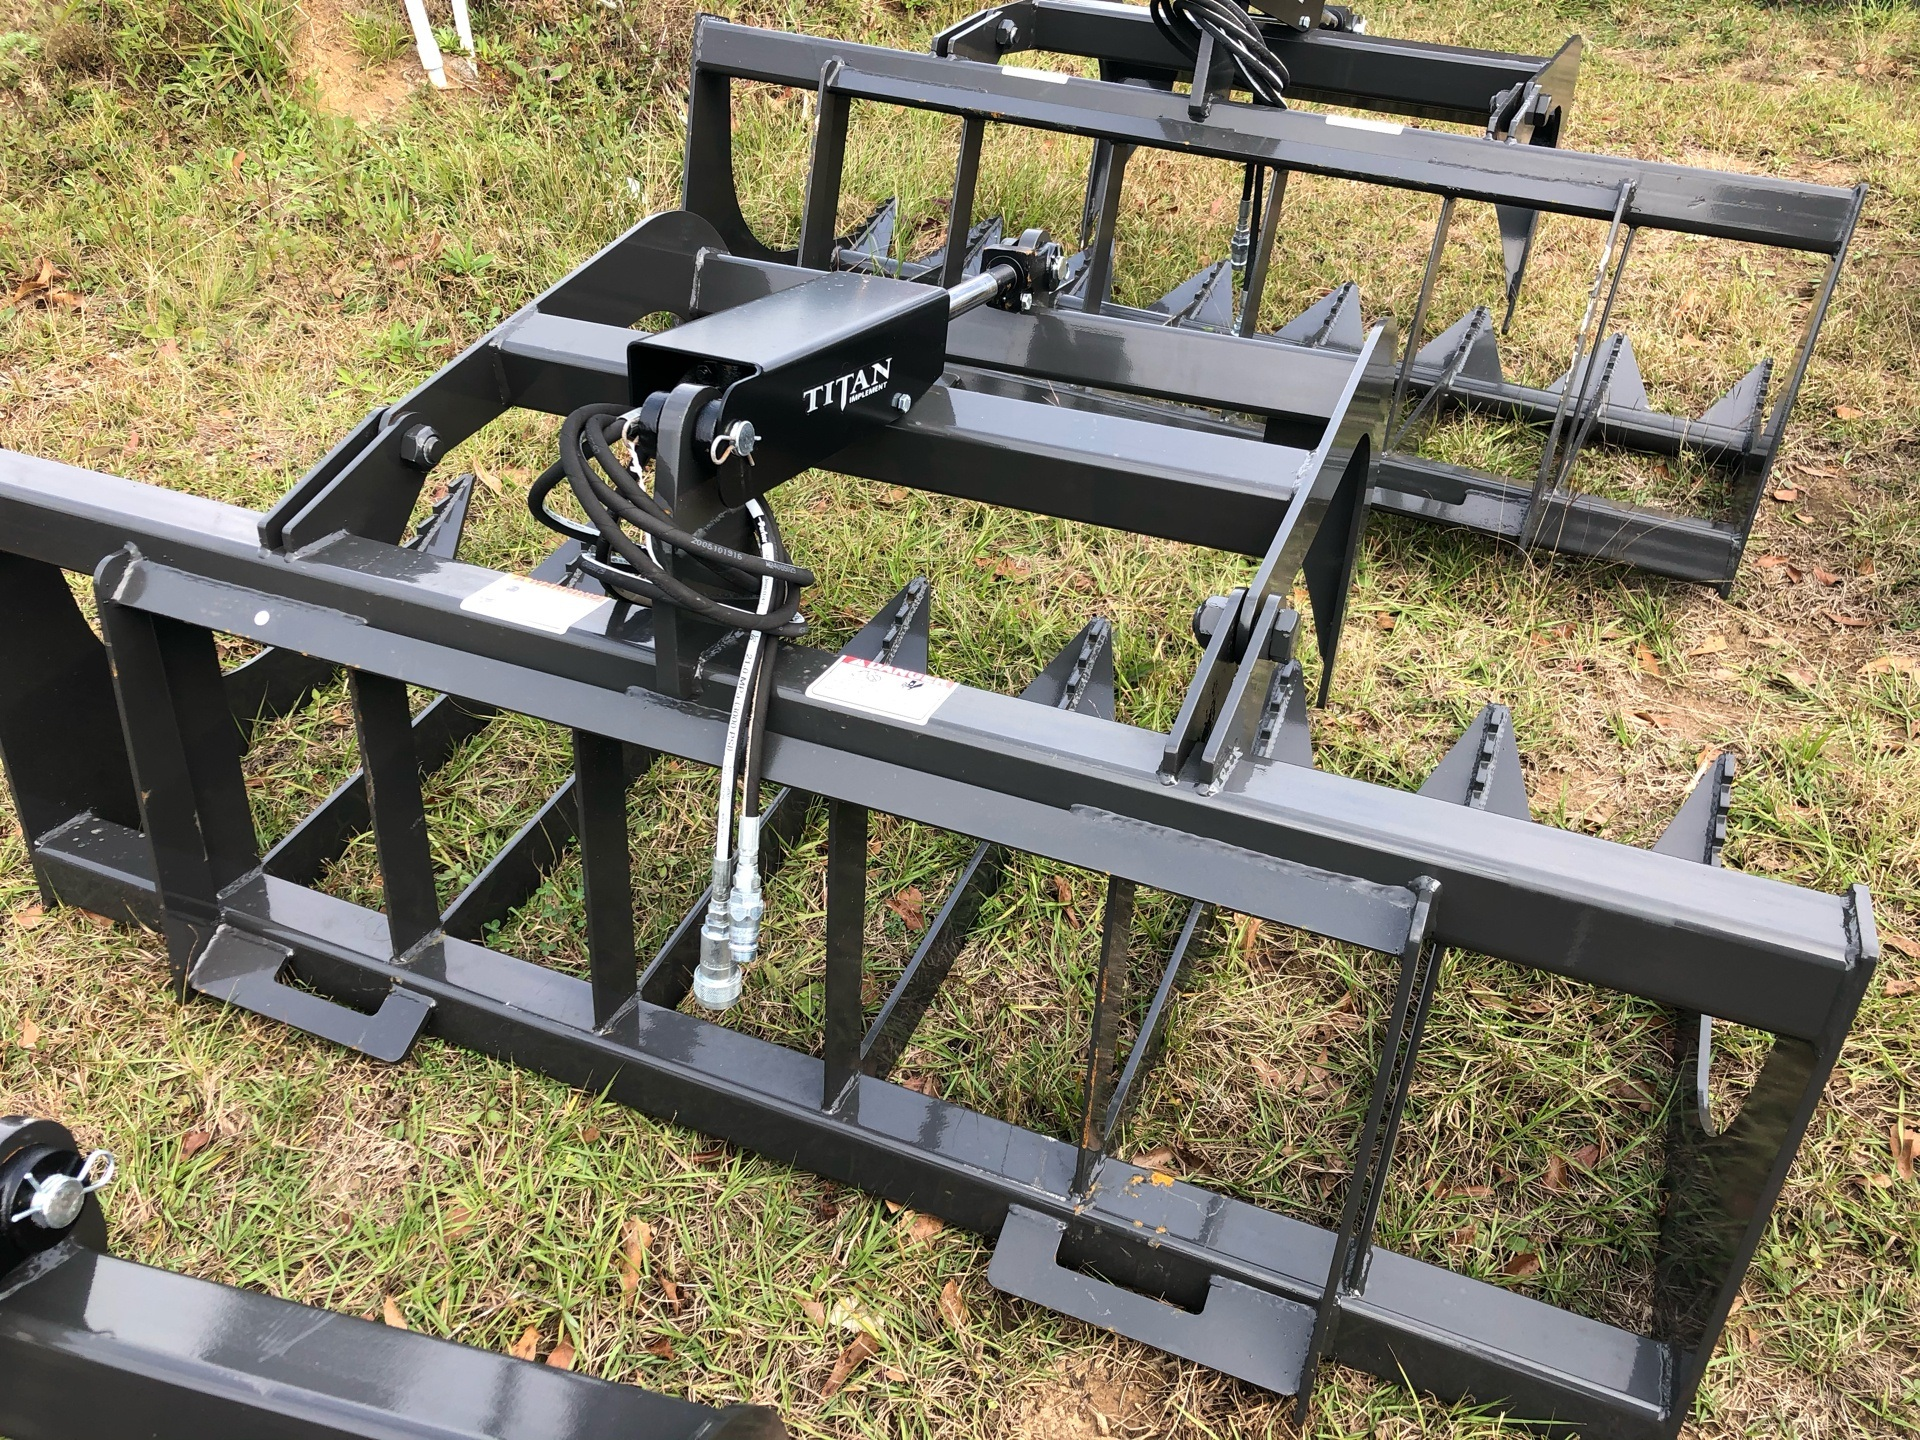 2021 Titan Implement 5 1/2' Root Grapple - Single Lid - SERG66 in Saucier, Mississippi - Photo 3